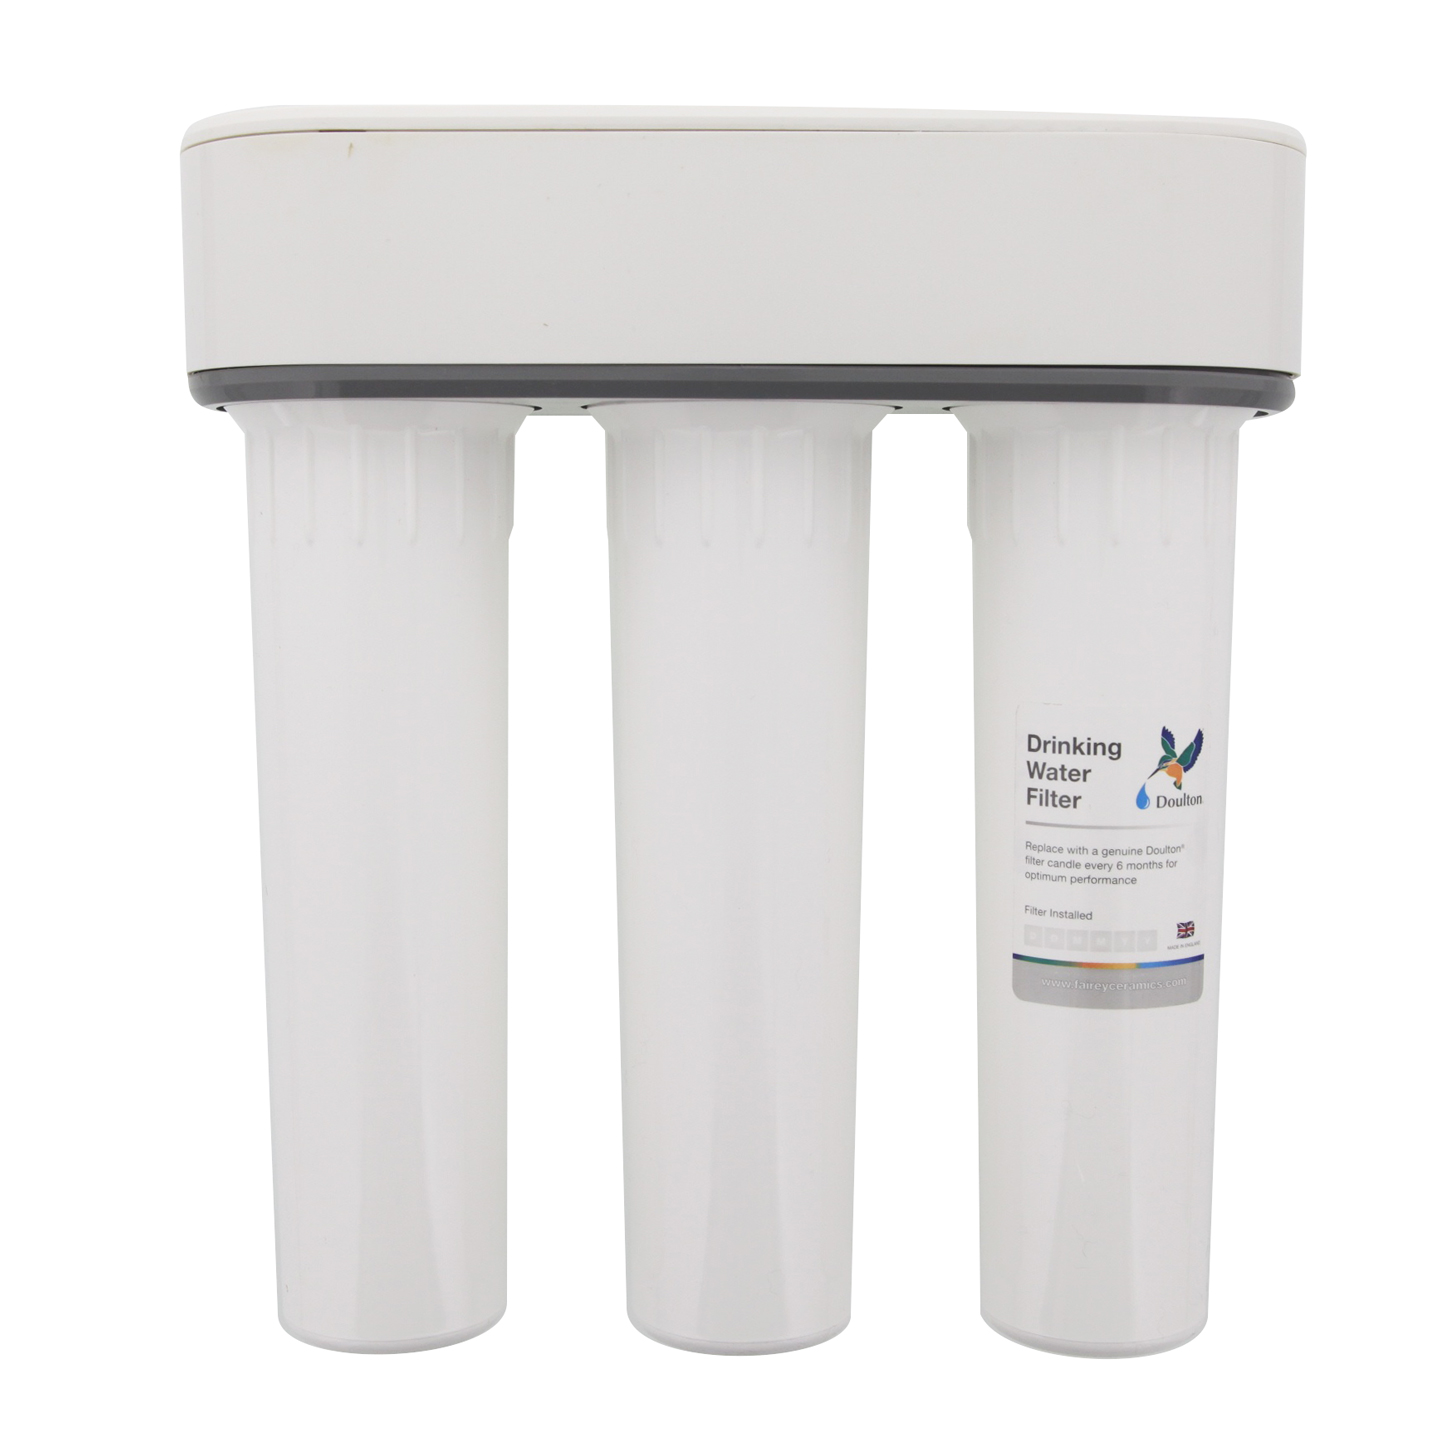 W9380002 Doulton HIP3 Undersink Water Filtration System DOULTON-W9380002